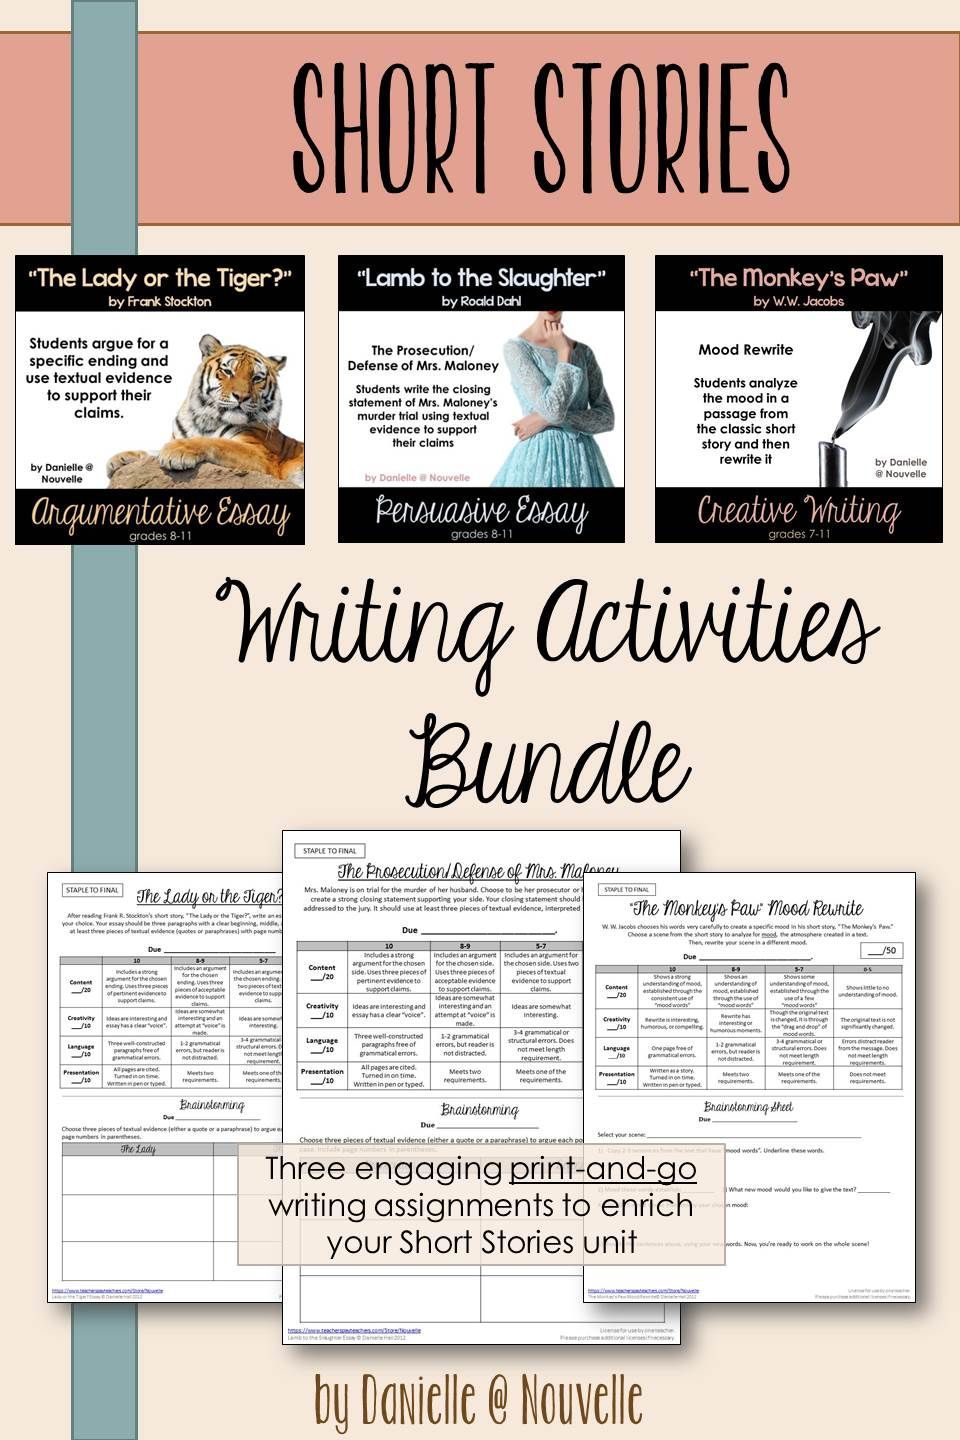 Thesis Essay Three Fabulous Writing Activities To Add To Your Short Stories Unit Lamb  To The Slaughter By Roald Dahl Persuasive Essay Lady Or The Tiger Essay On Science also Personal Essay Examples For High School Short Stories  Writing Activities Bundle  Short Stories For High  English Essays For High School Students